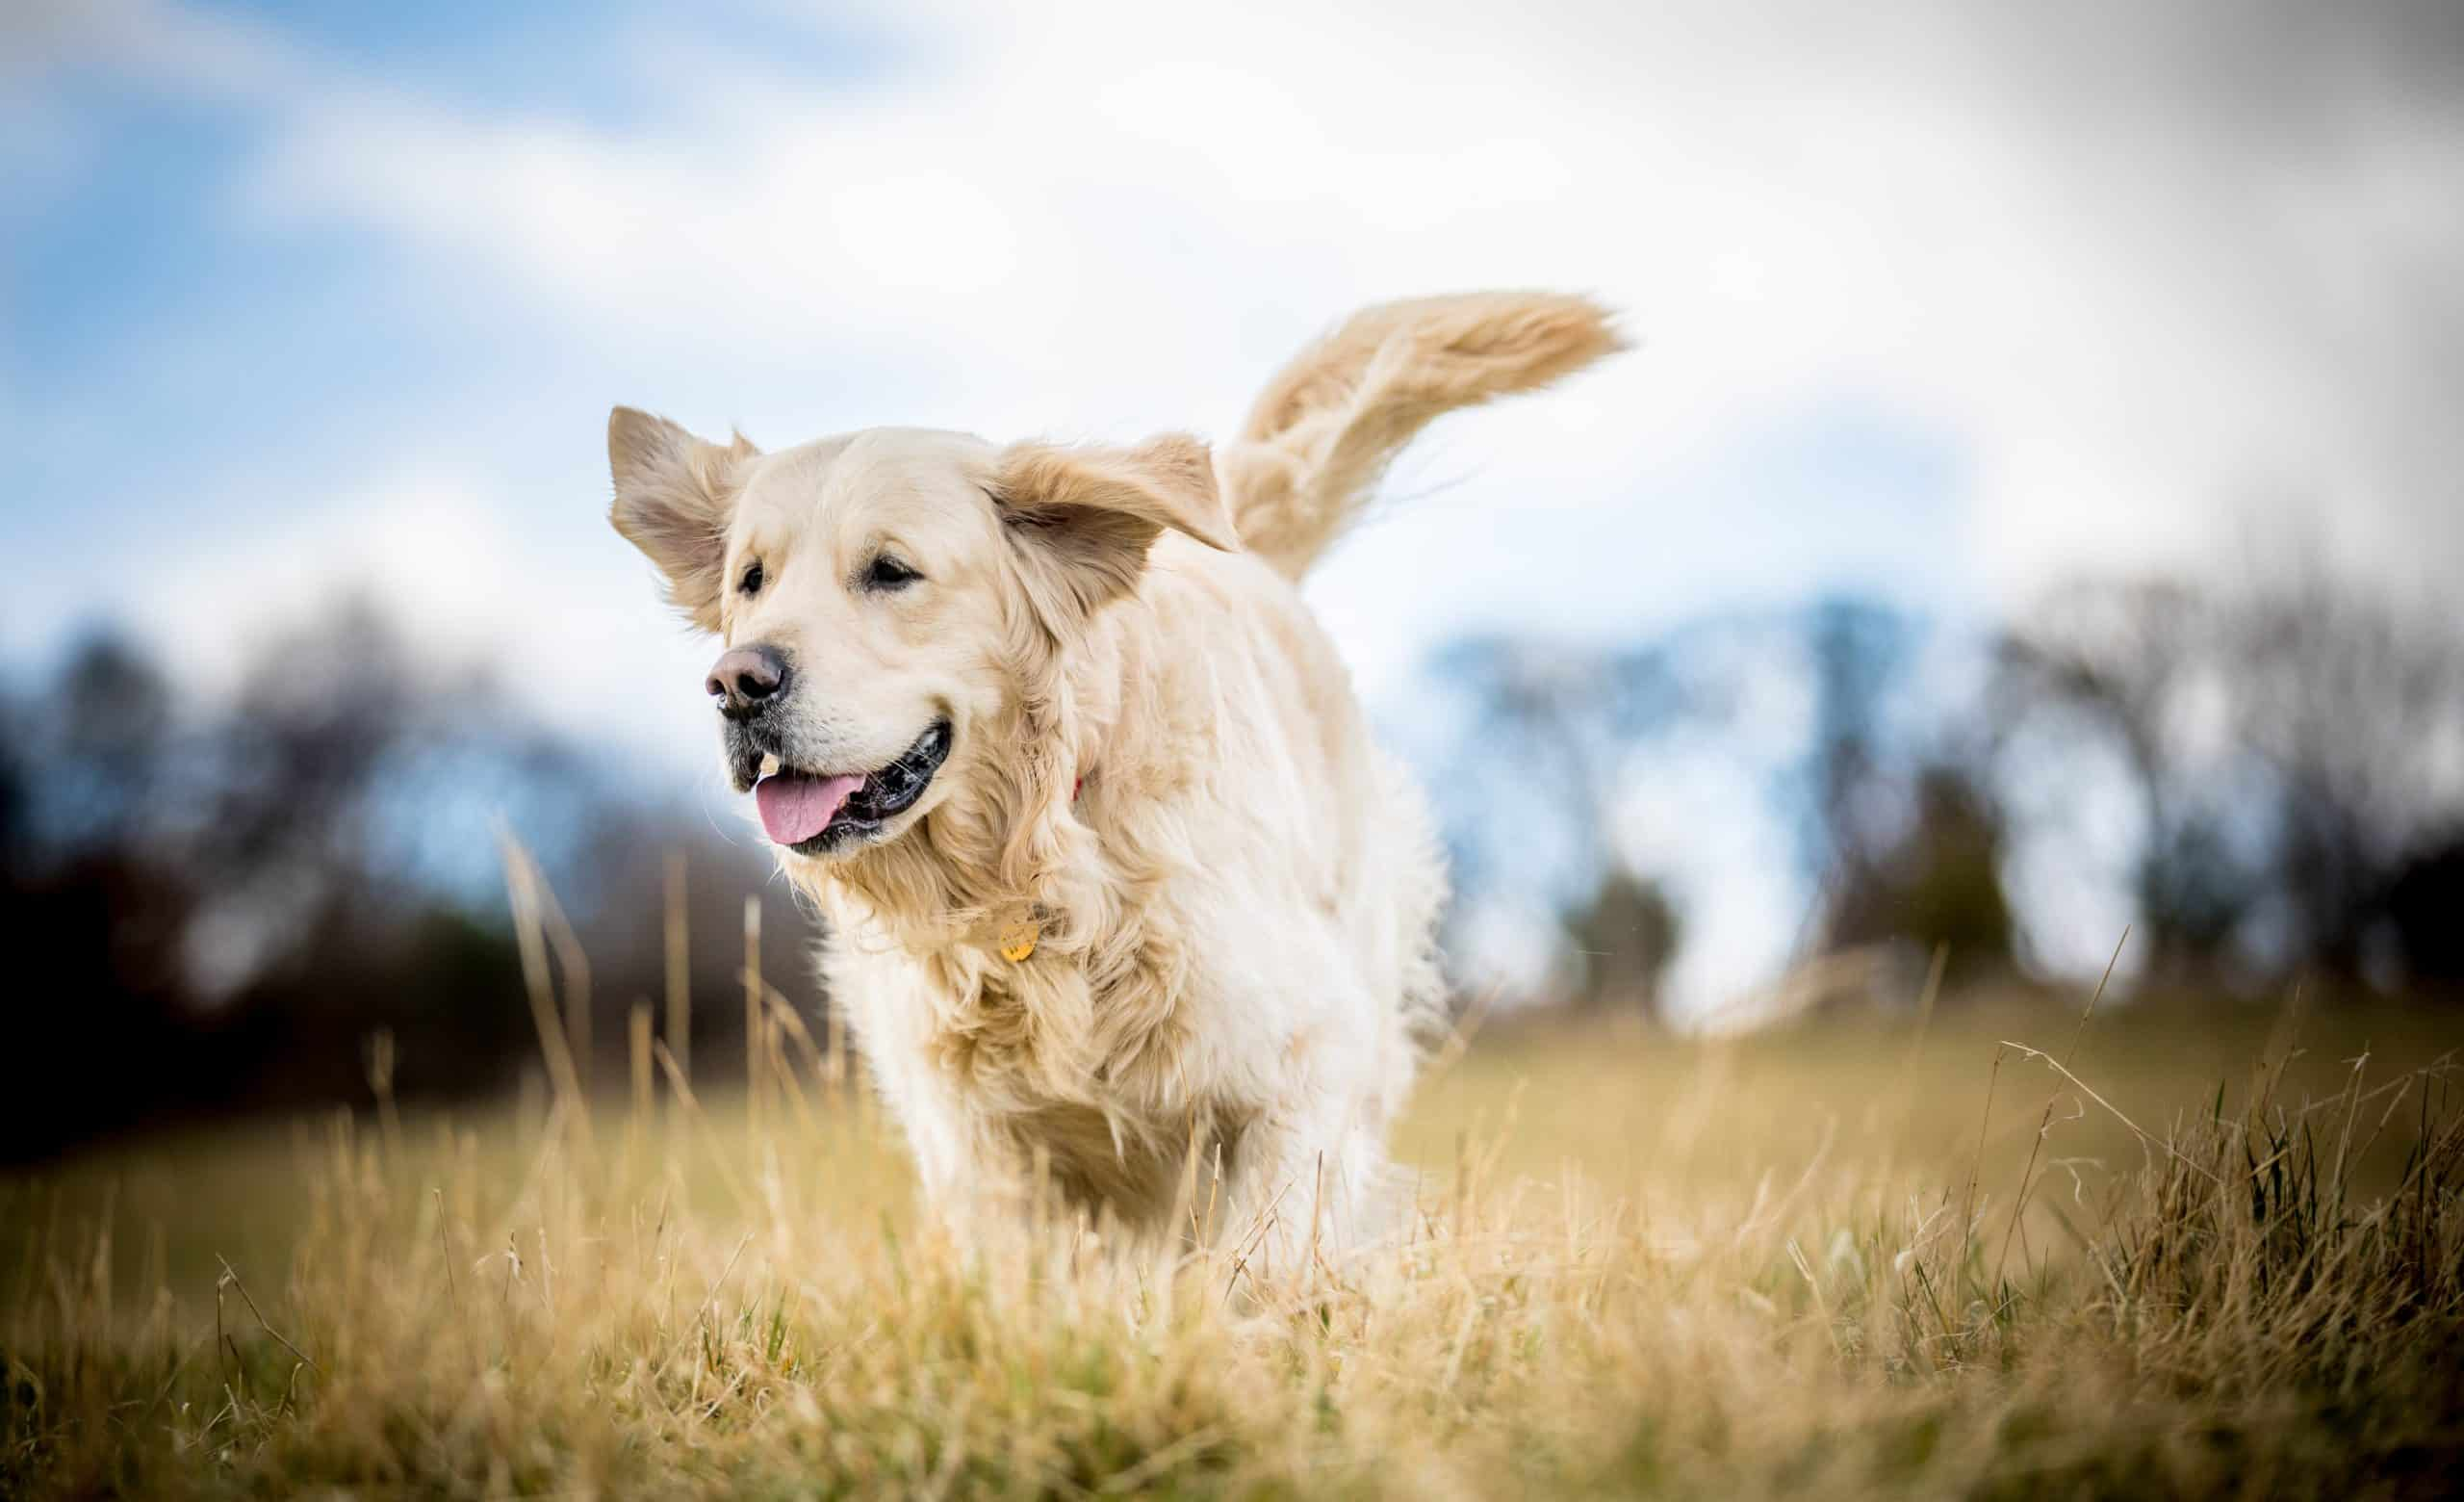 Golden retriever runs outside. Golden retrievers are excellent at scaring away wild animals like squirrels, rats, skunks, raccoons, and other nuisance animals.